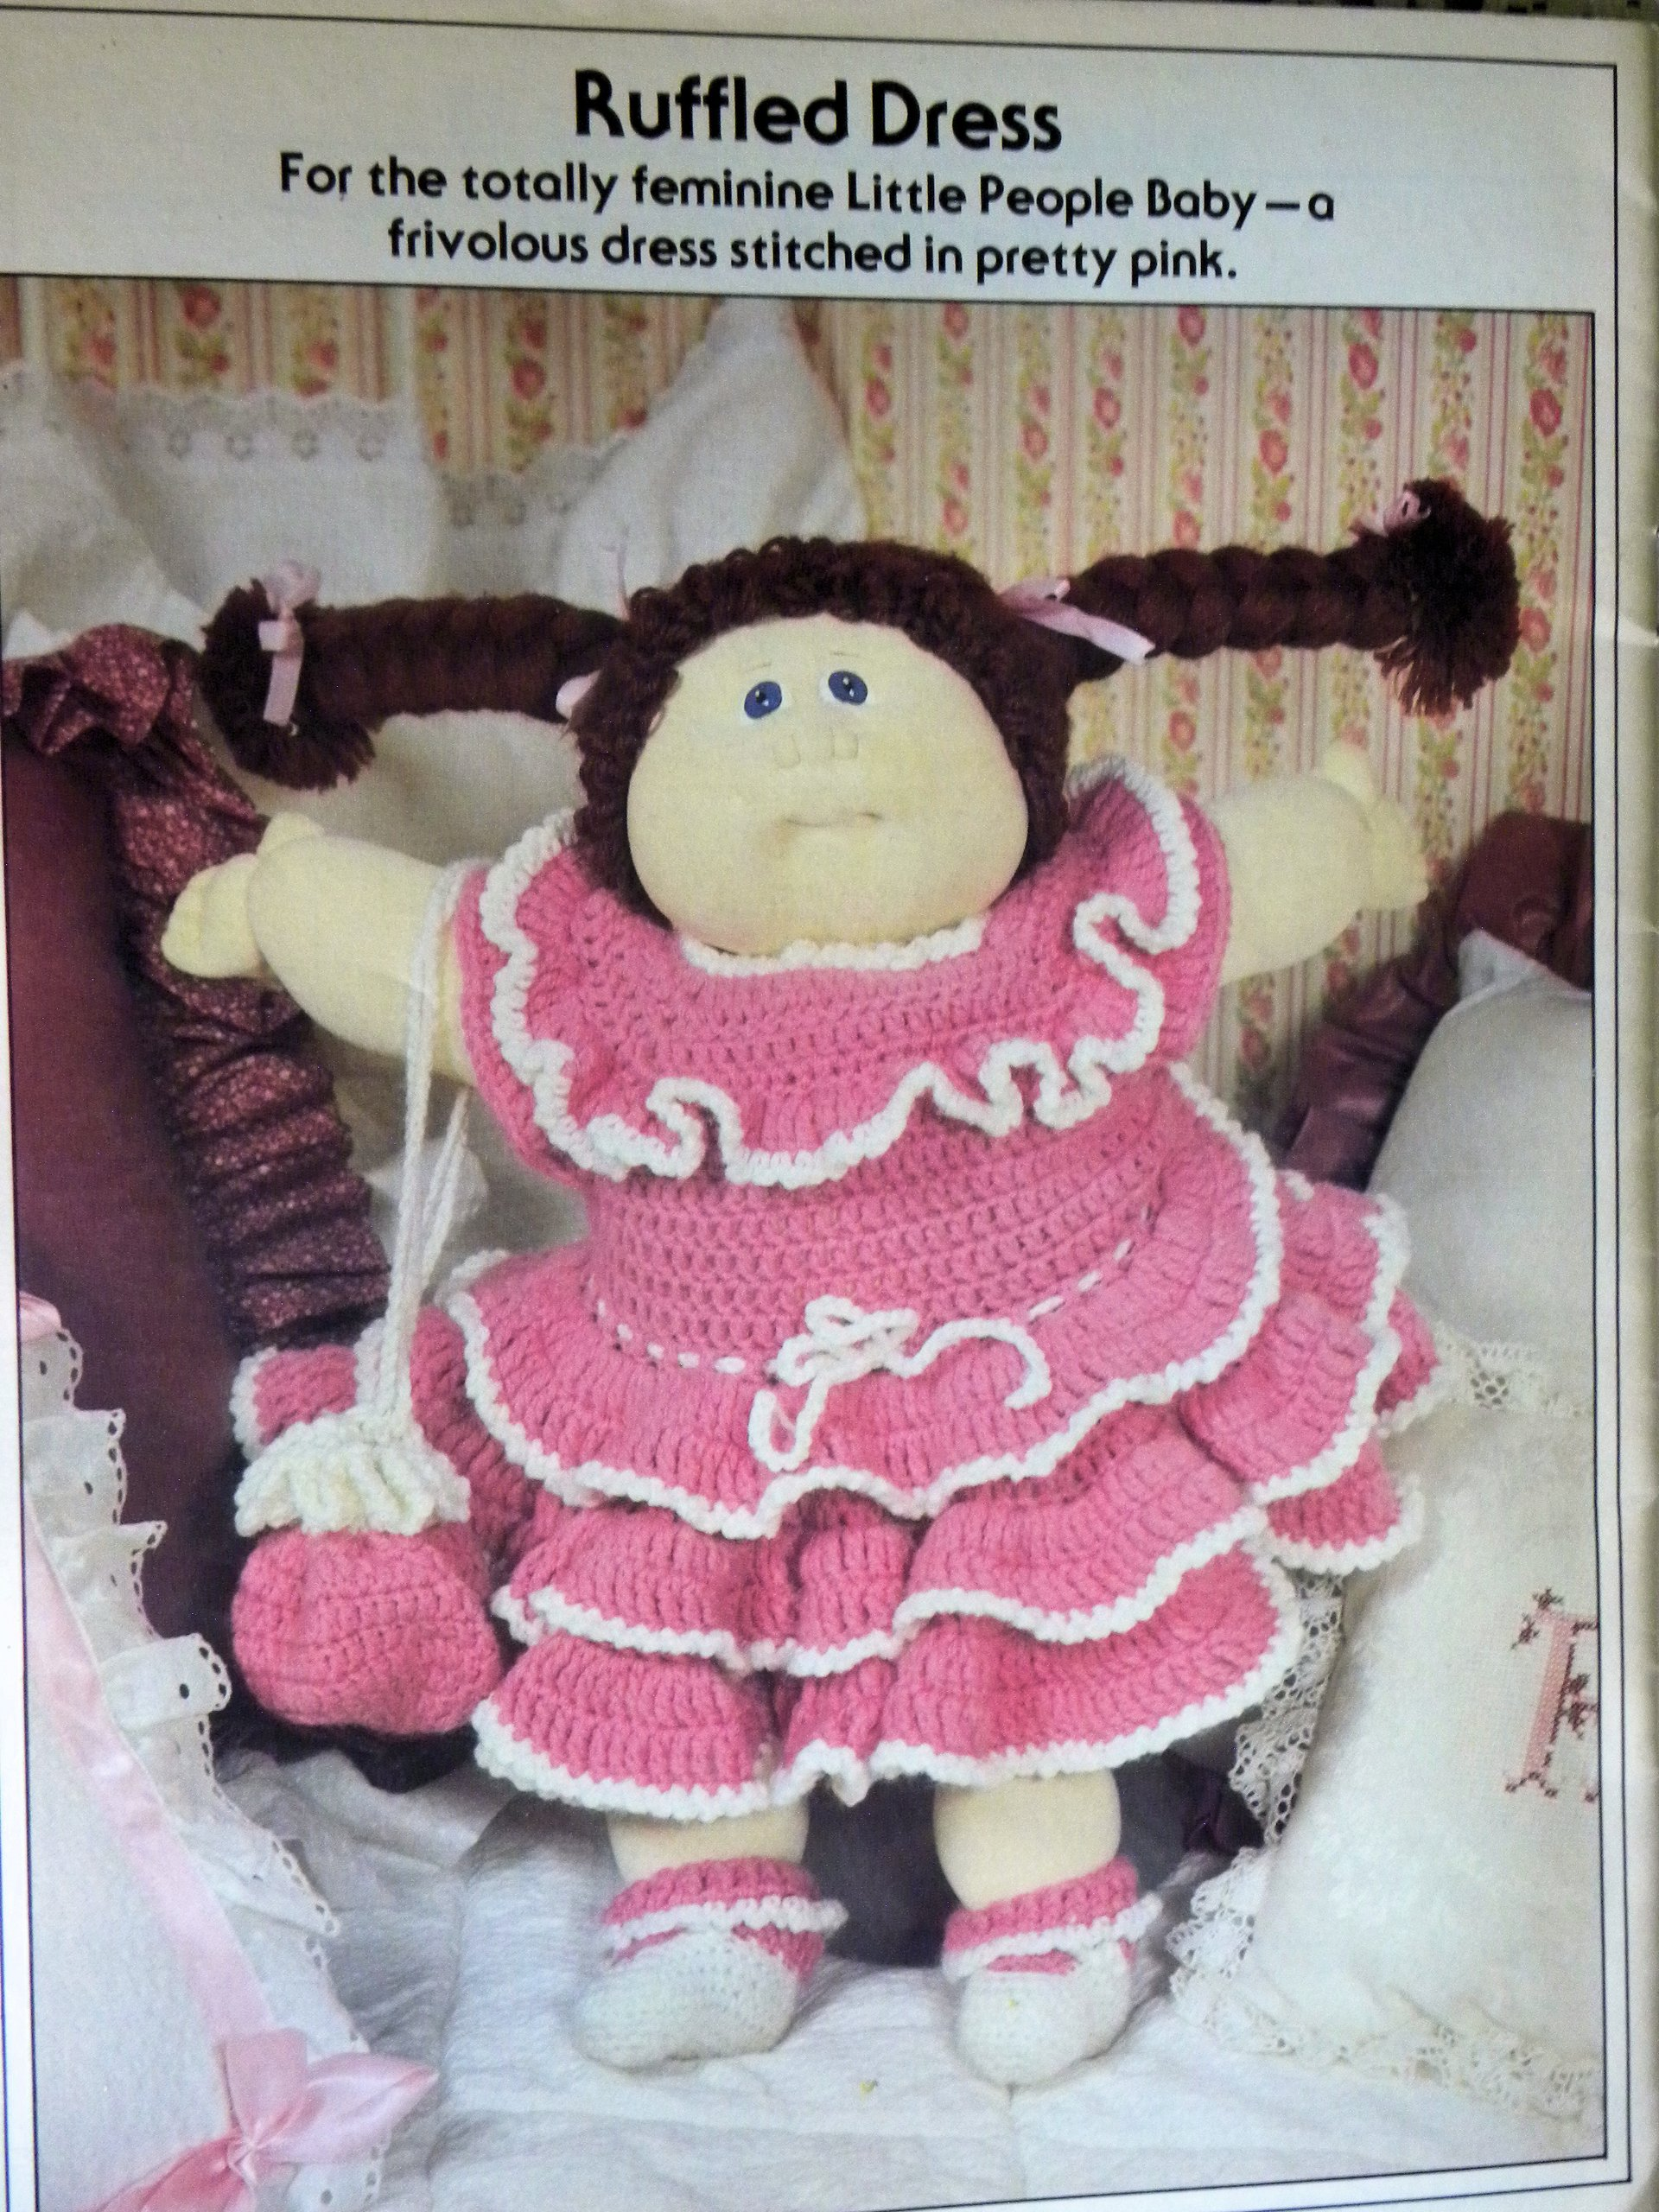 Xavier Roberts Presents Crochet Clothing For Cabbage Patch Kids Paperback – 1982 Shirley Now Plaid Enterprises Inc Norcross GA